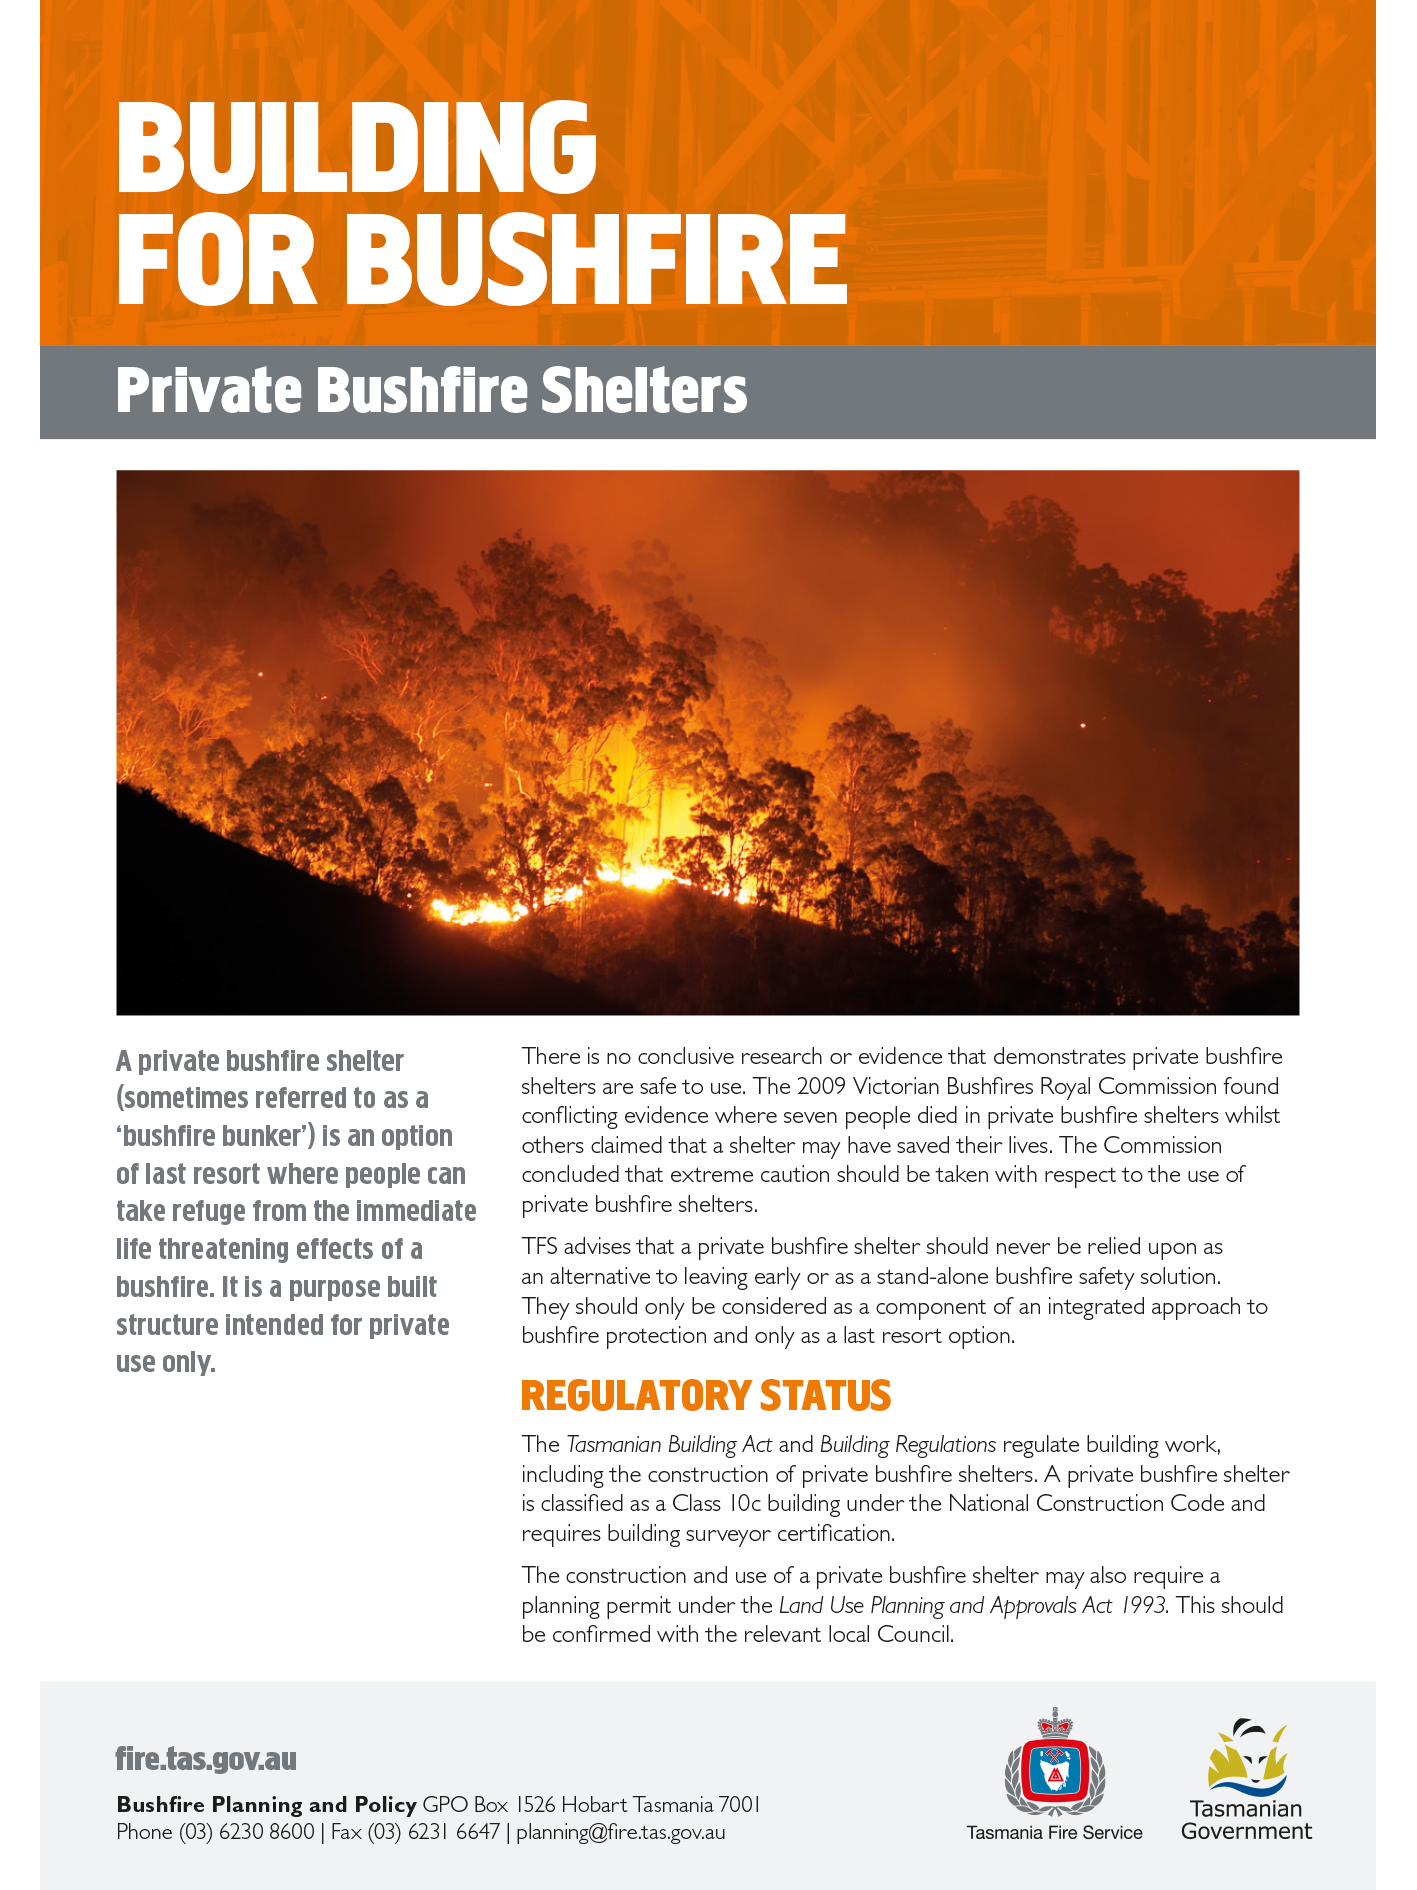 TFS Private Bushfire Shelters Info Sheet